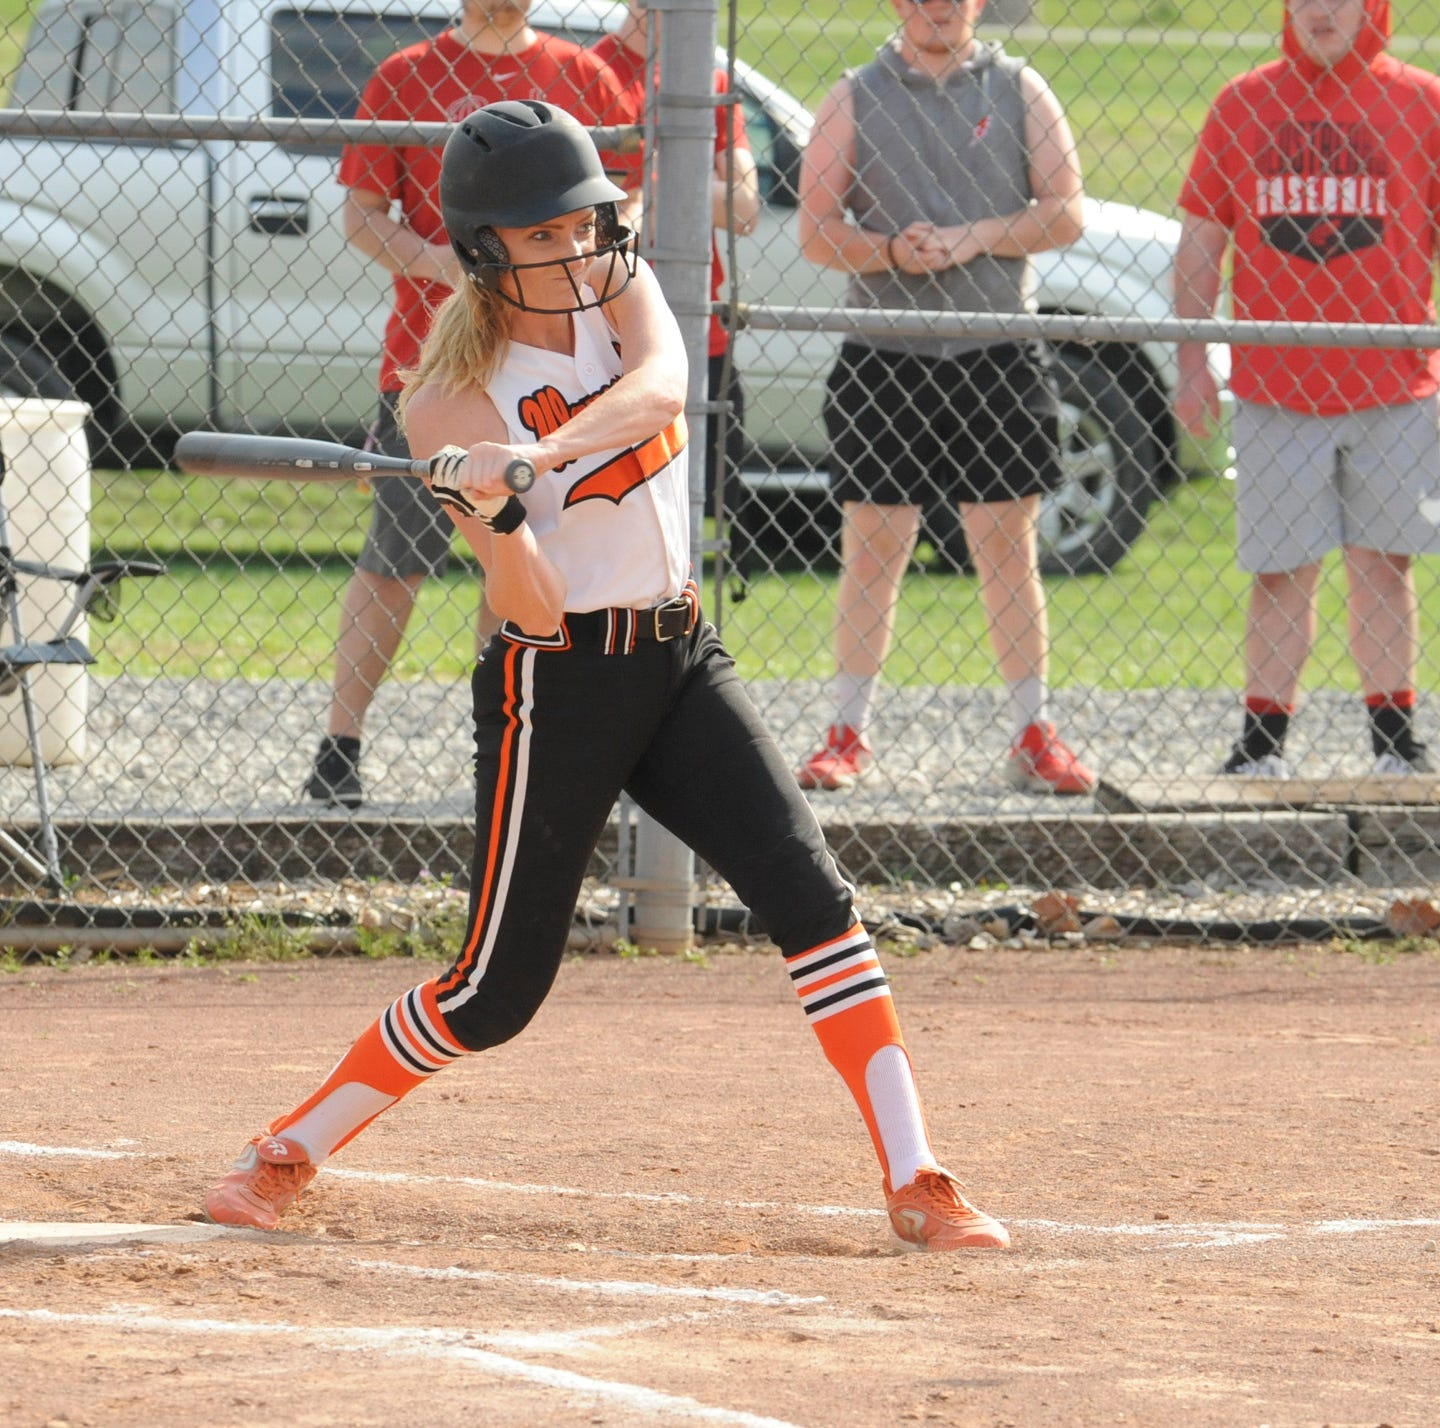 OHIO HS SOFTBALL: Waverly uses five-run fourth inning to defeat Unioto 7-4